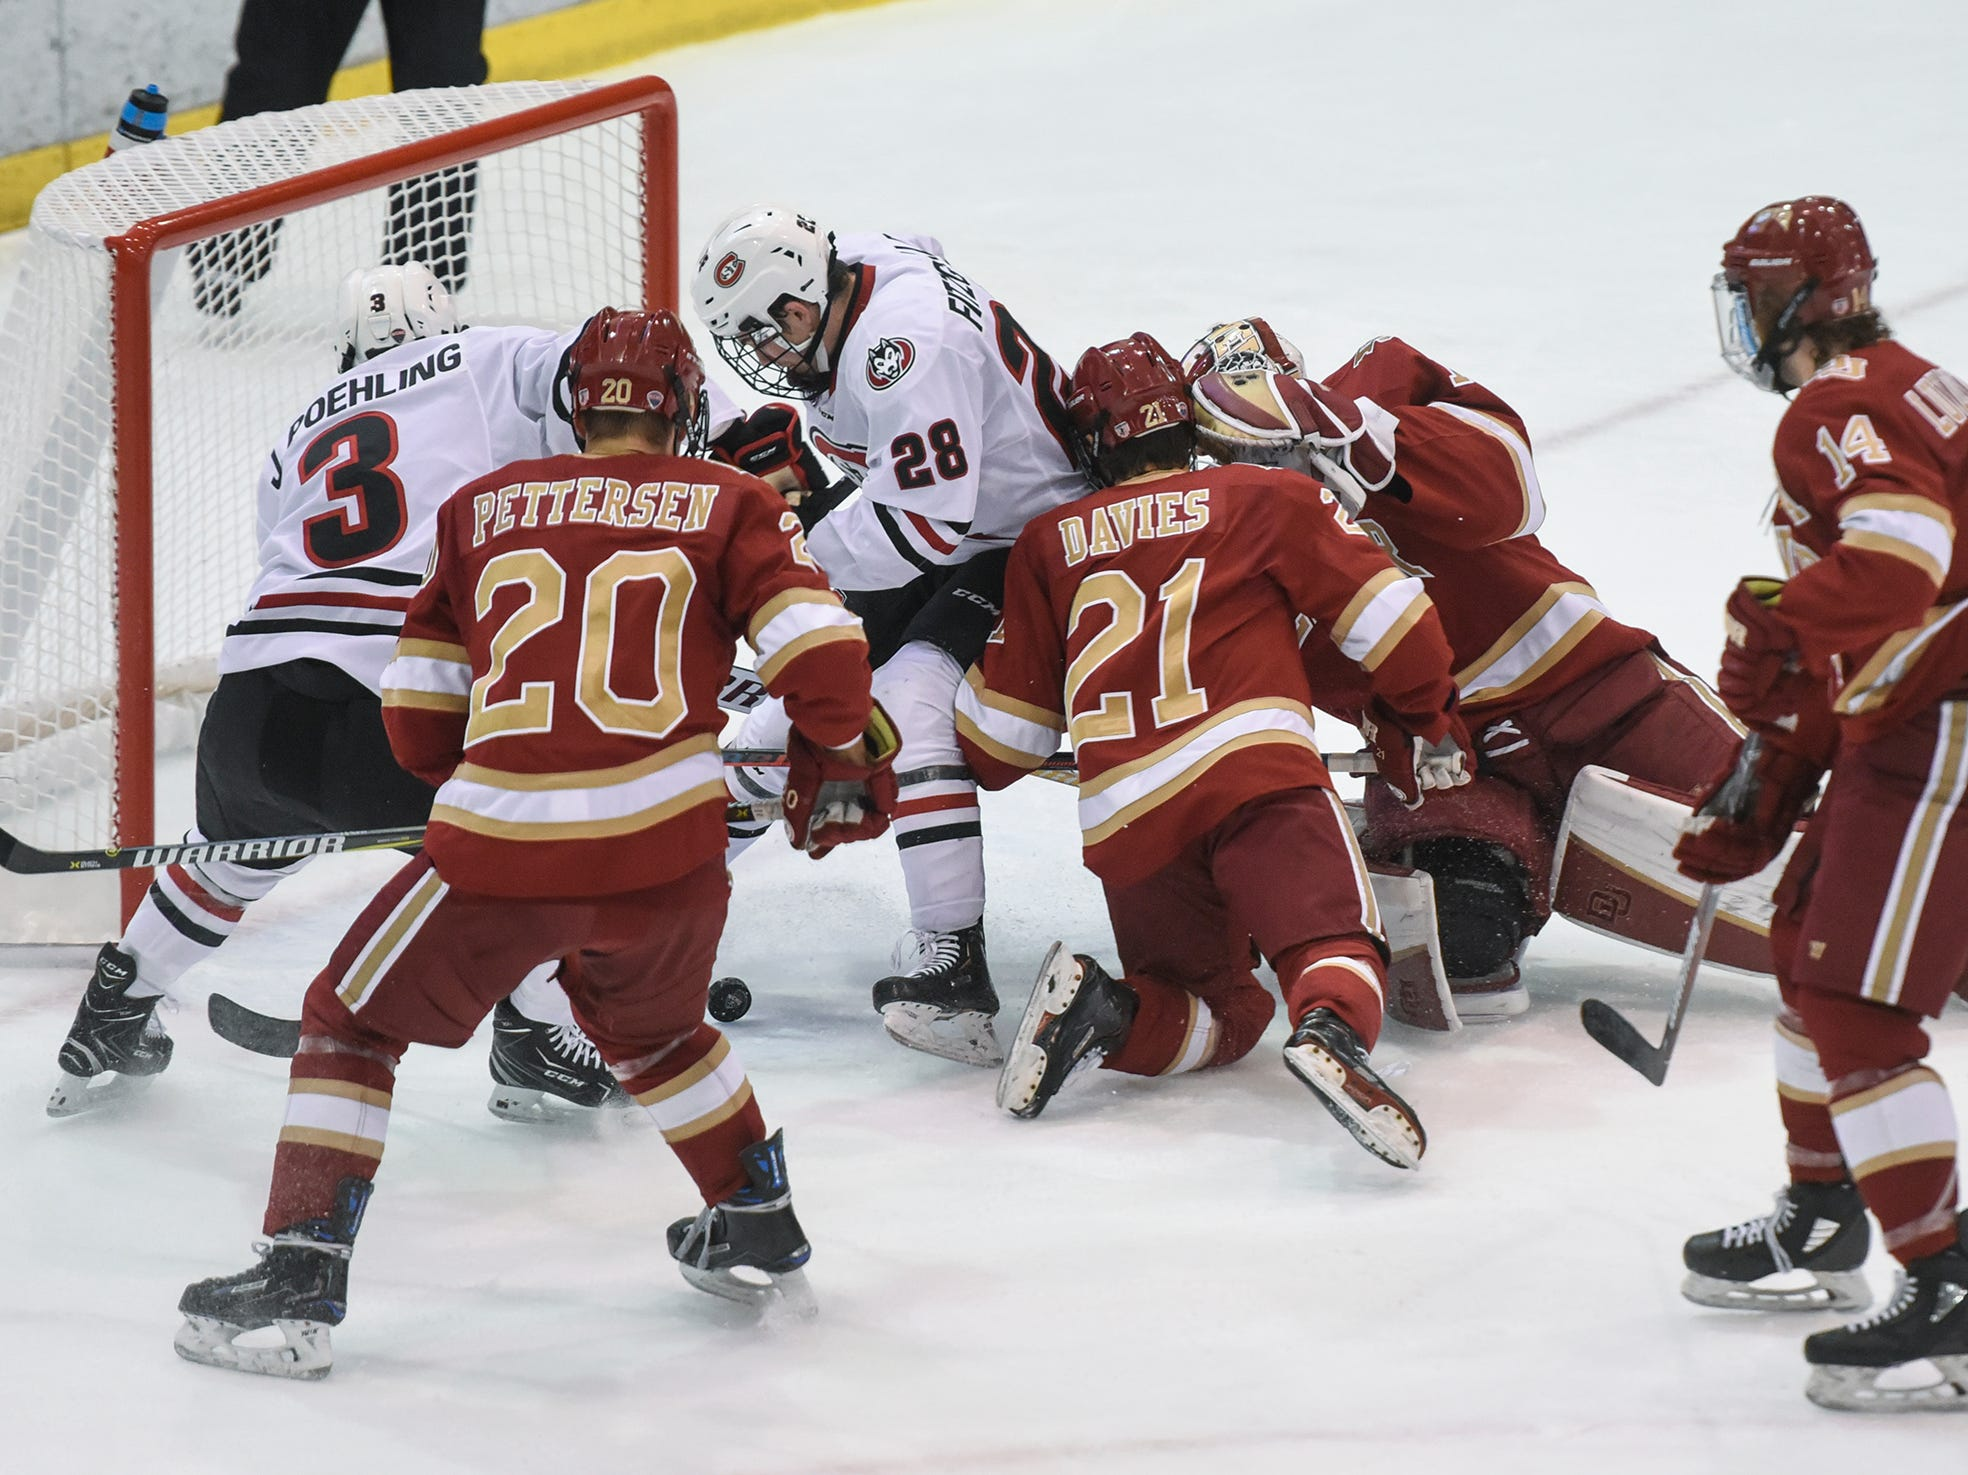 Players converge in front of the Denver goal during the first period of the Saturday, Nov. 10, game at the Herb Brooks National Hockey Center in St. Cloud.